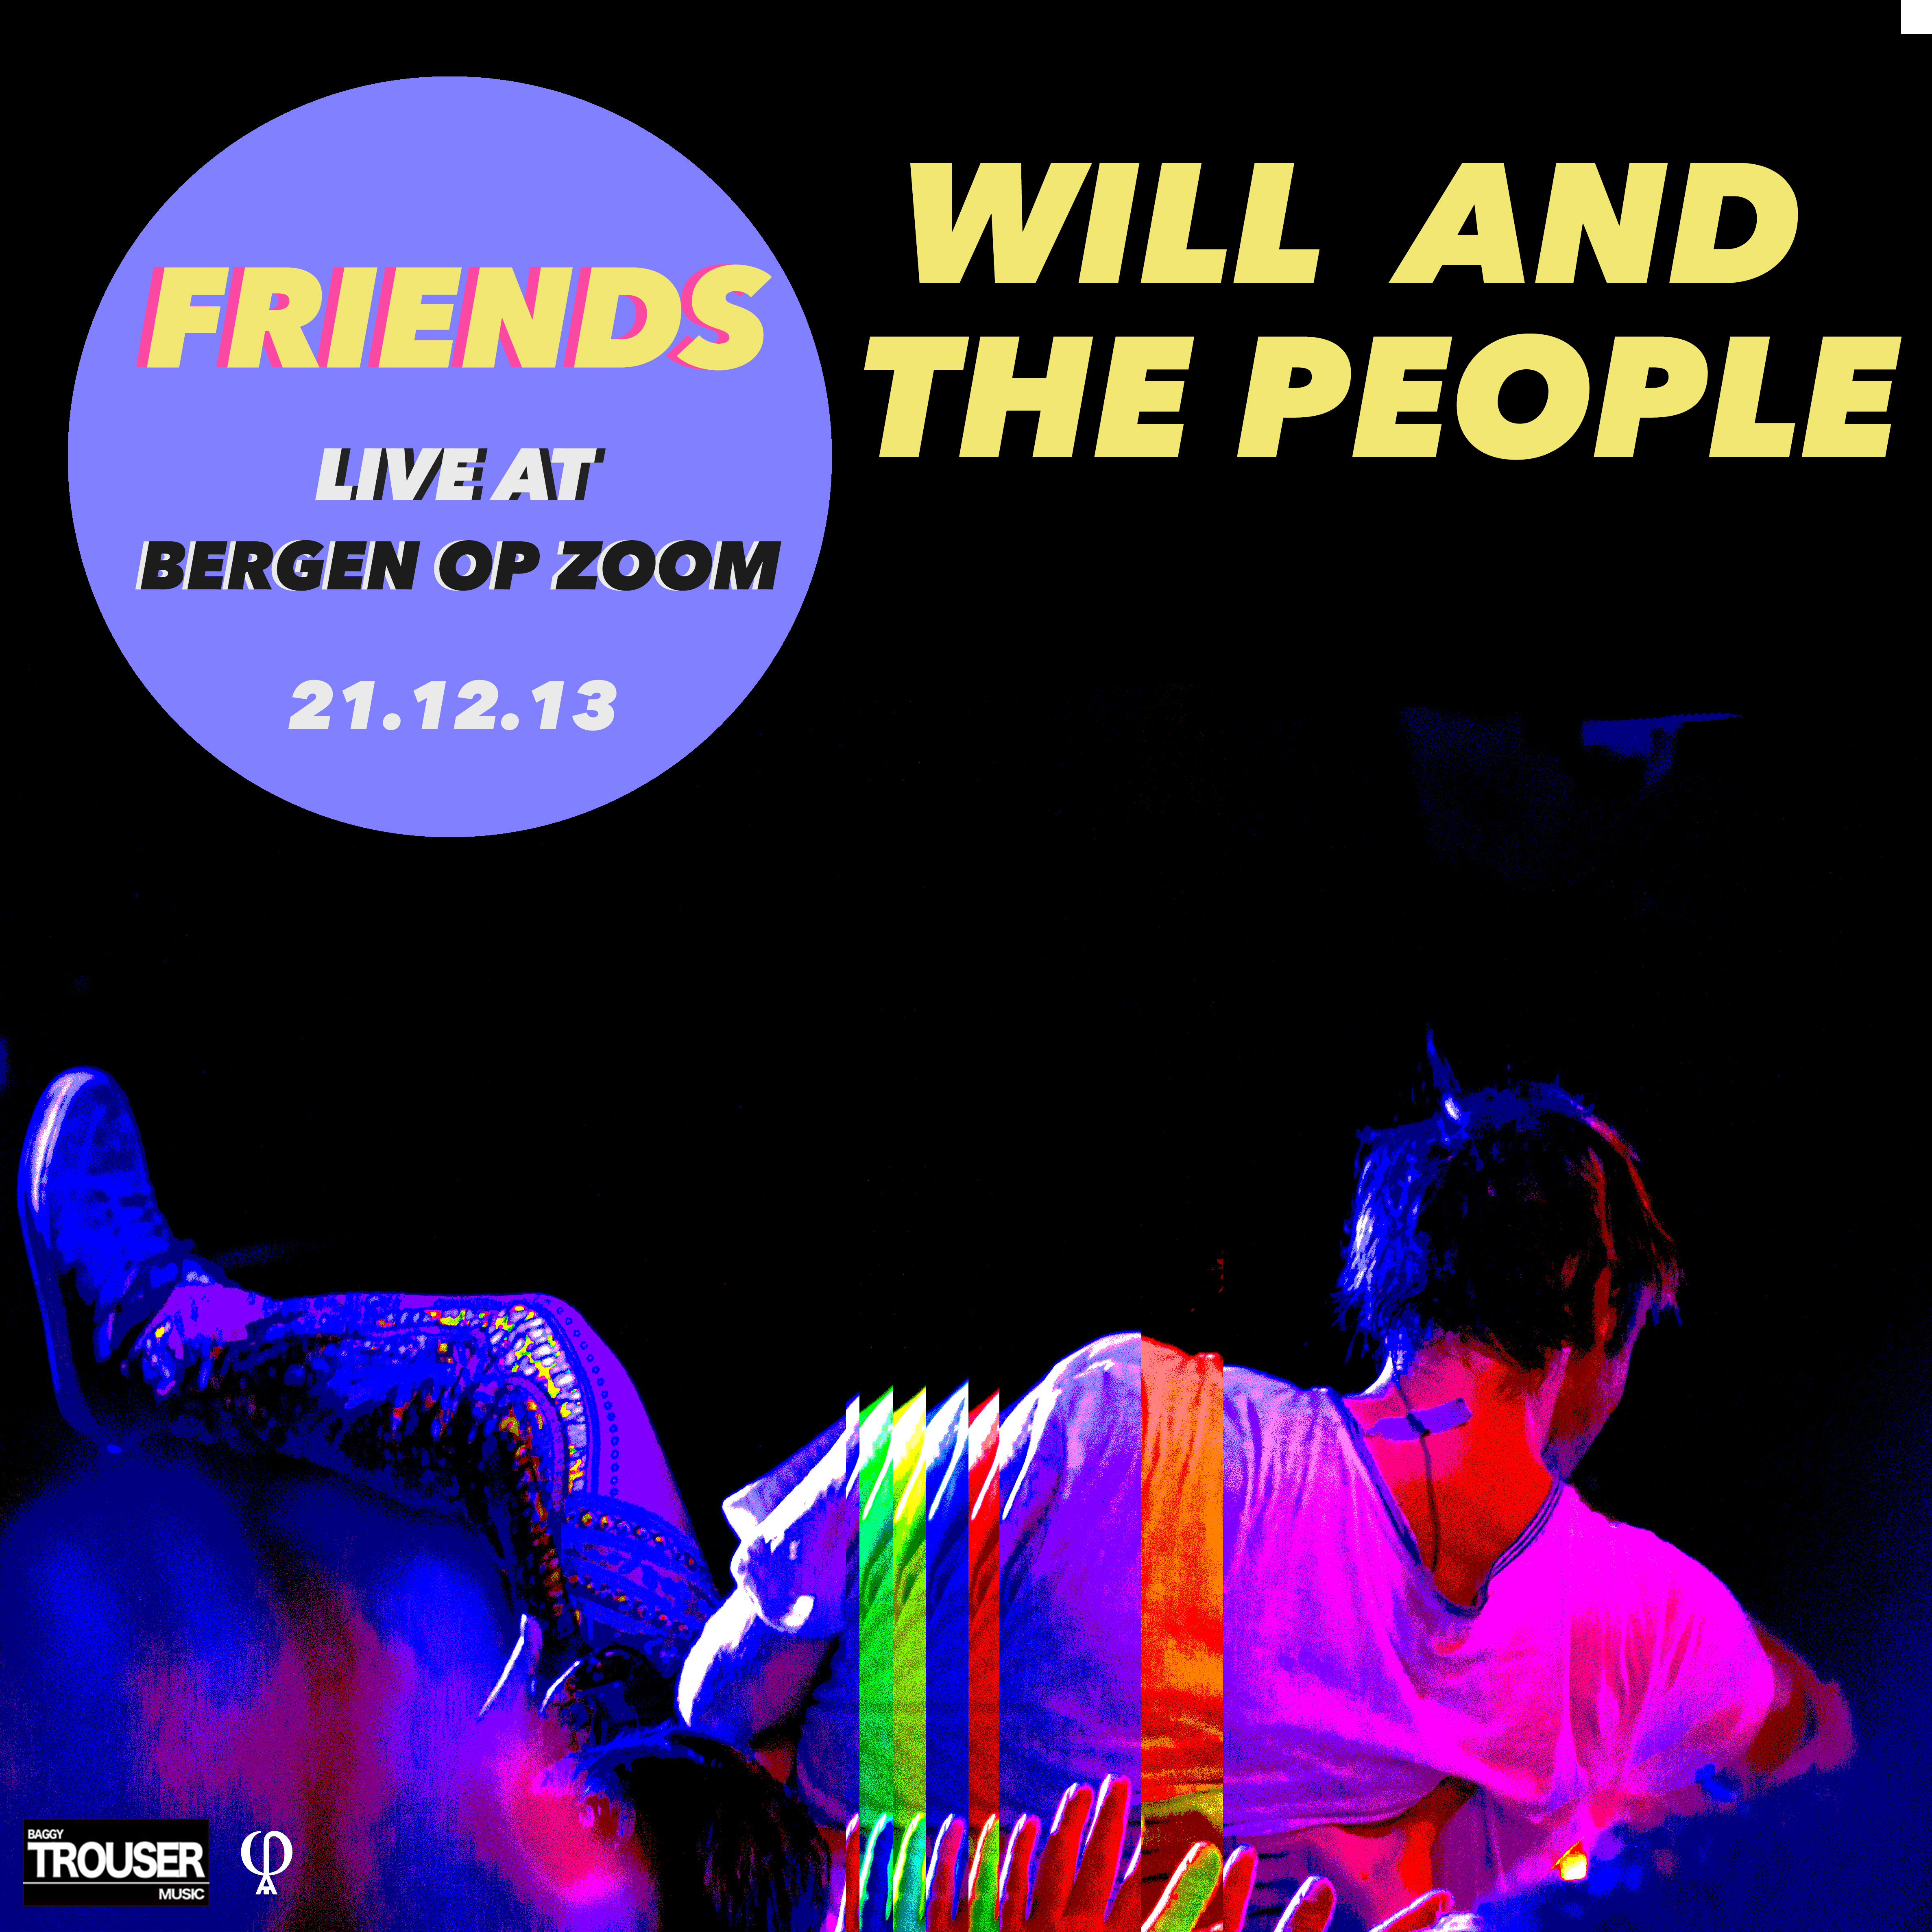 Friends - Live at Bergen op Zoom 2013 - Will and The People